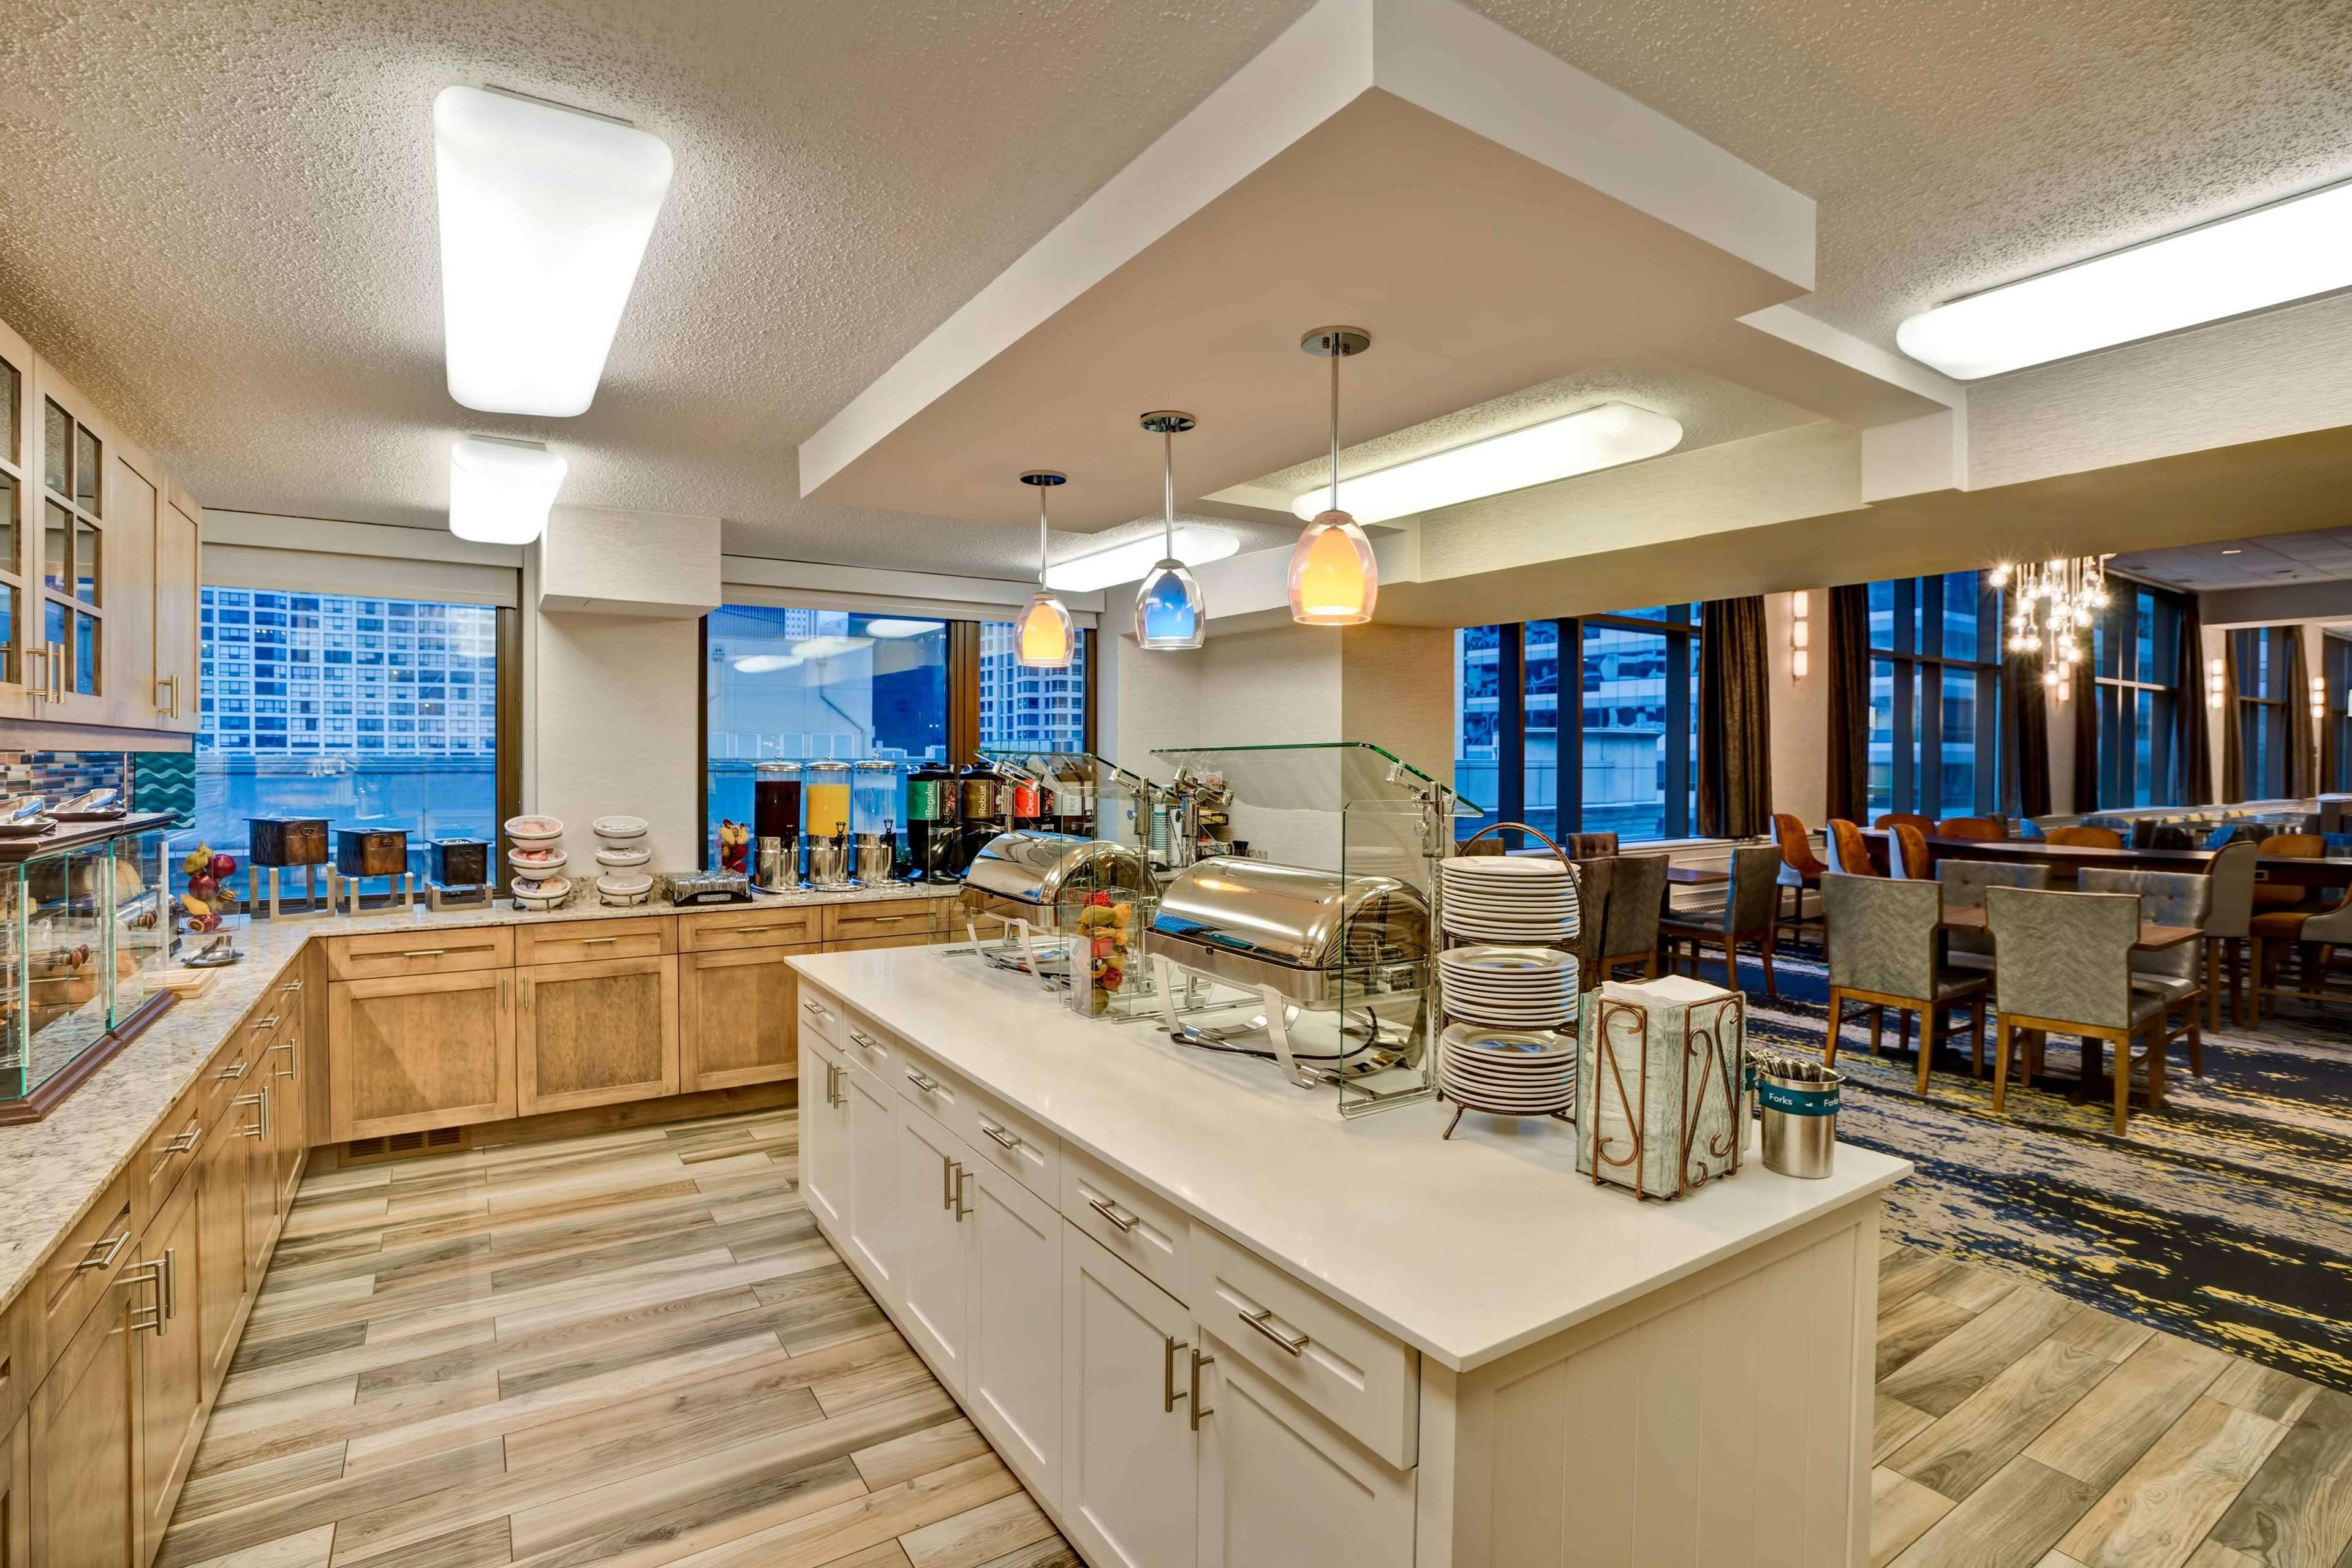 Homewood Suites by Hilton Chicago-Downtown image 25